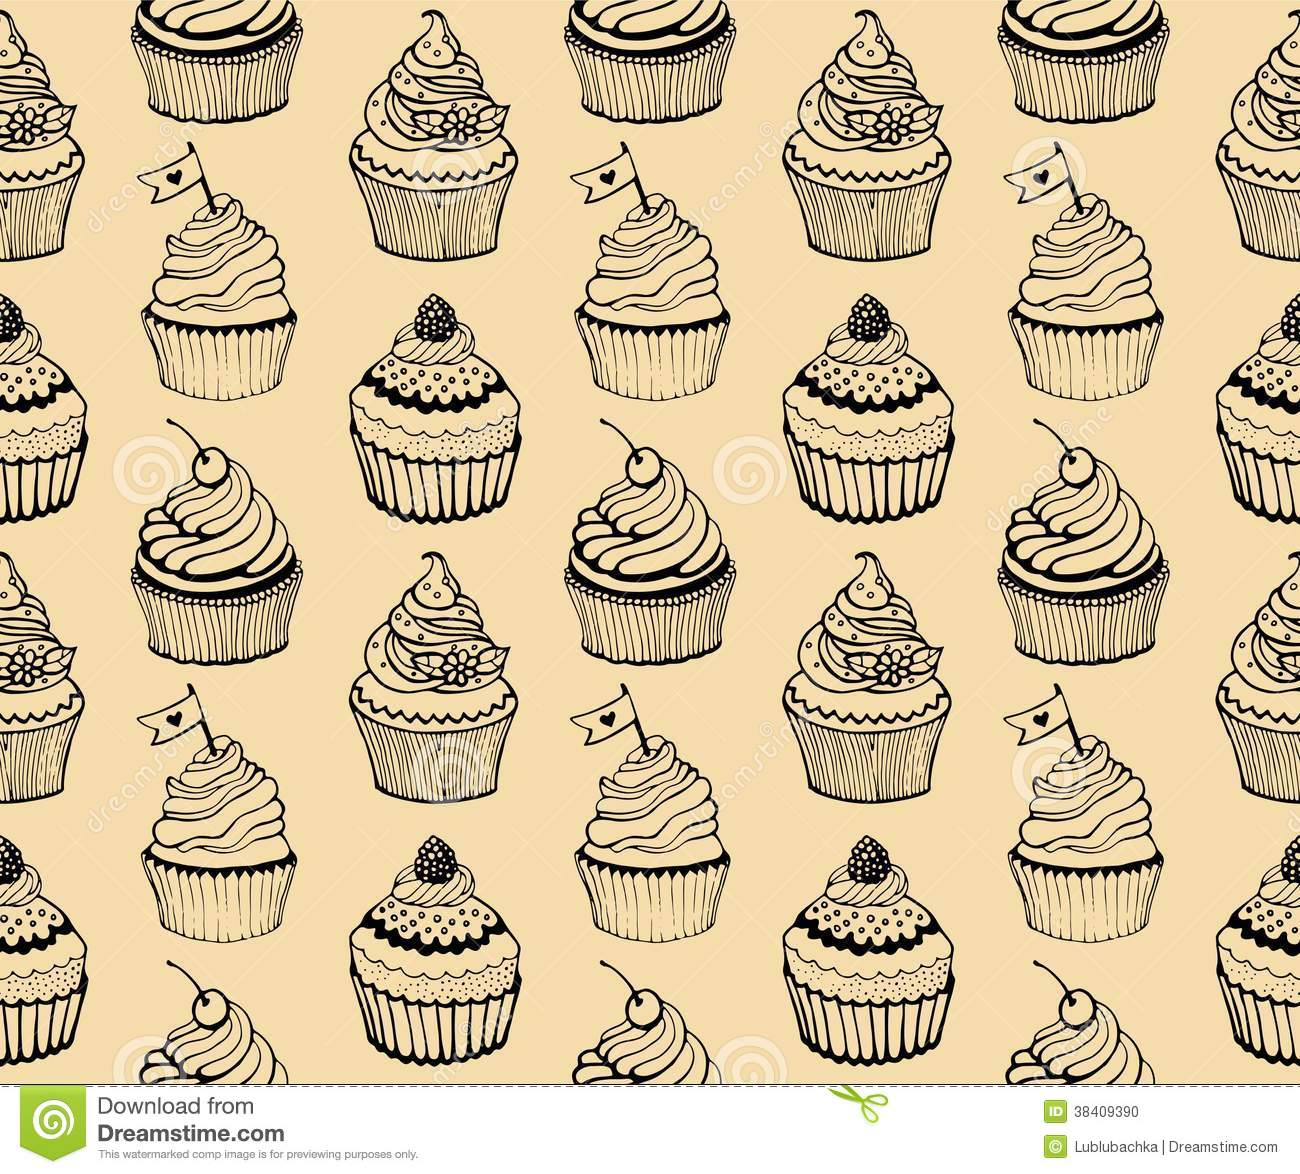 Cupcake Baking Seamless Hand Drawn Pattern On The Beige Background